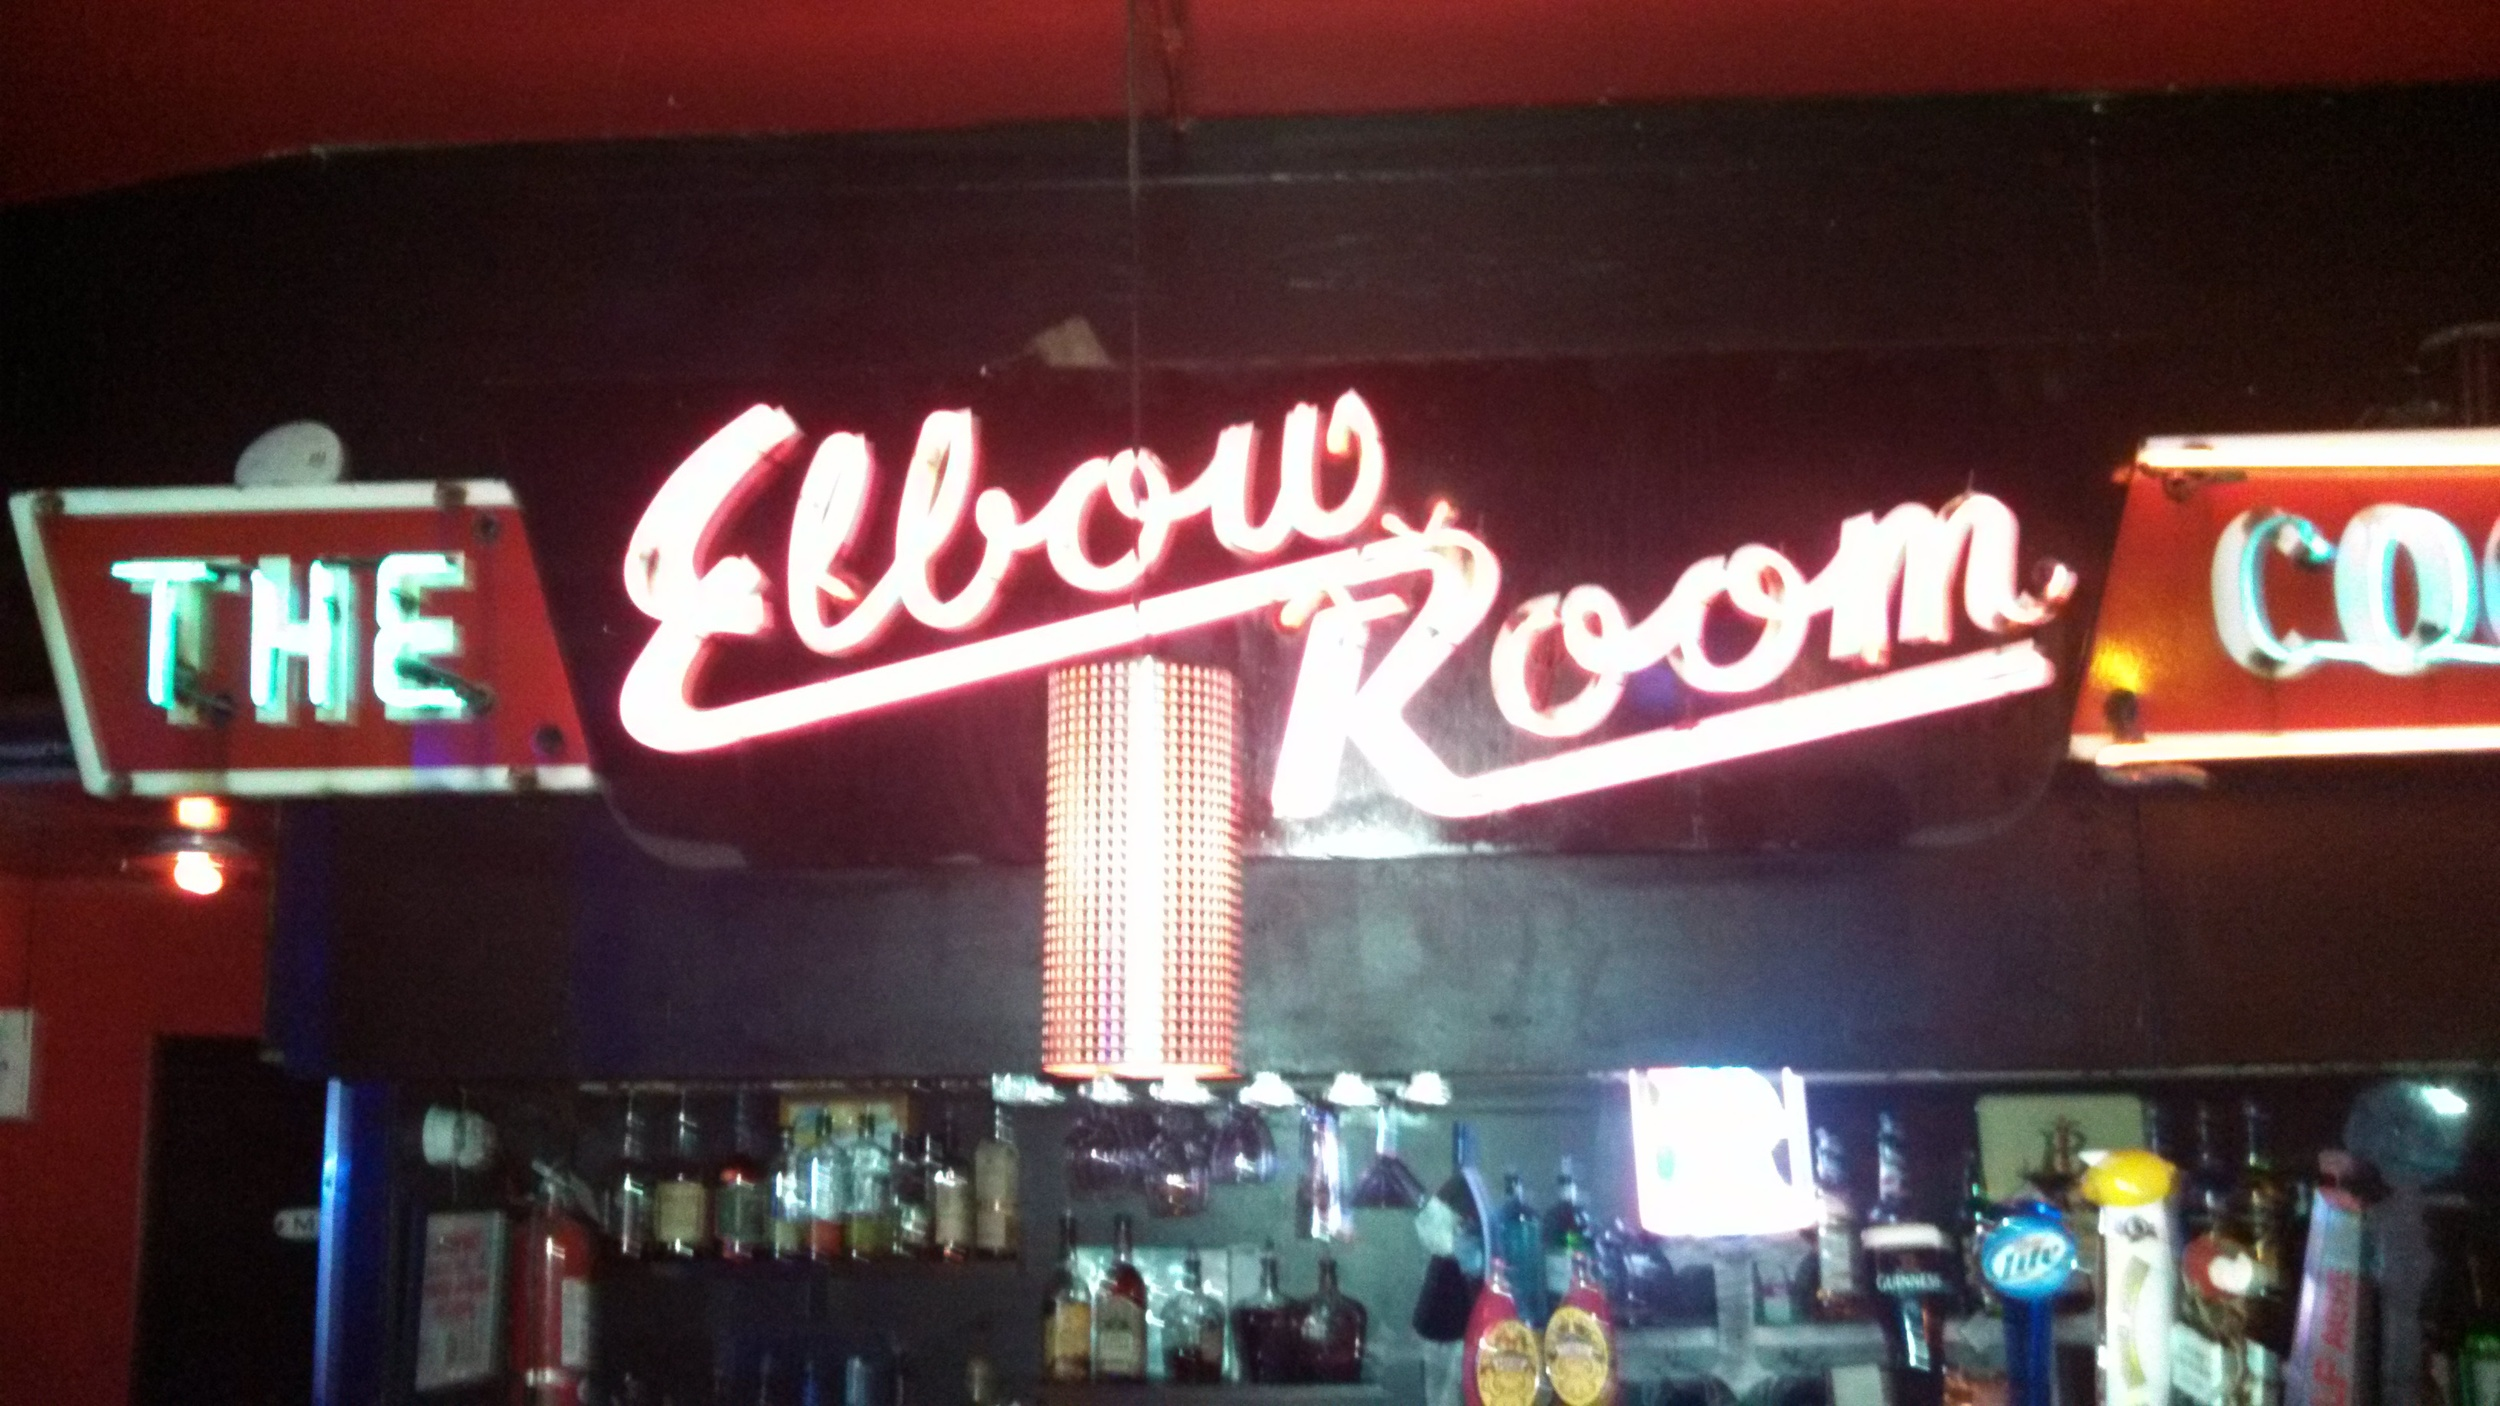 Johnny D @ The Elbo Room. Nationally Recognized as Chicago's Premier Concert Venue!